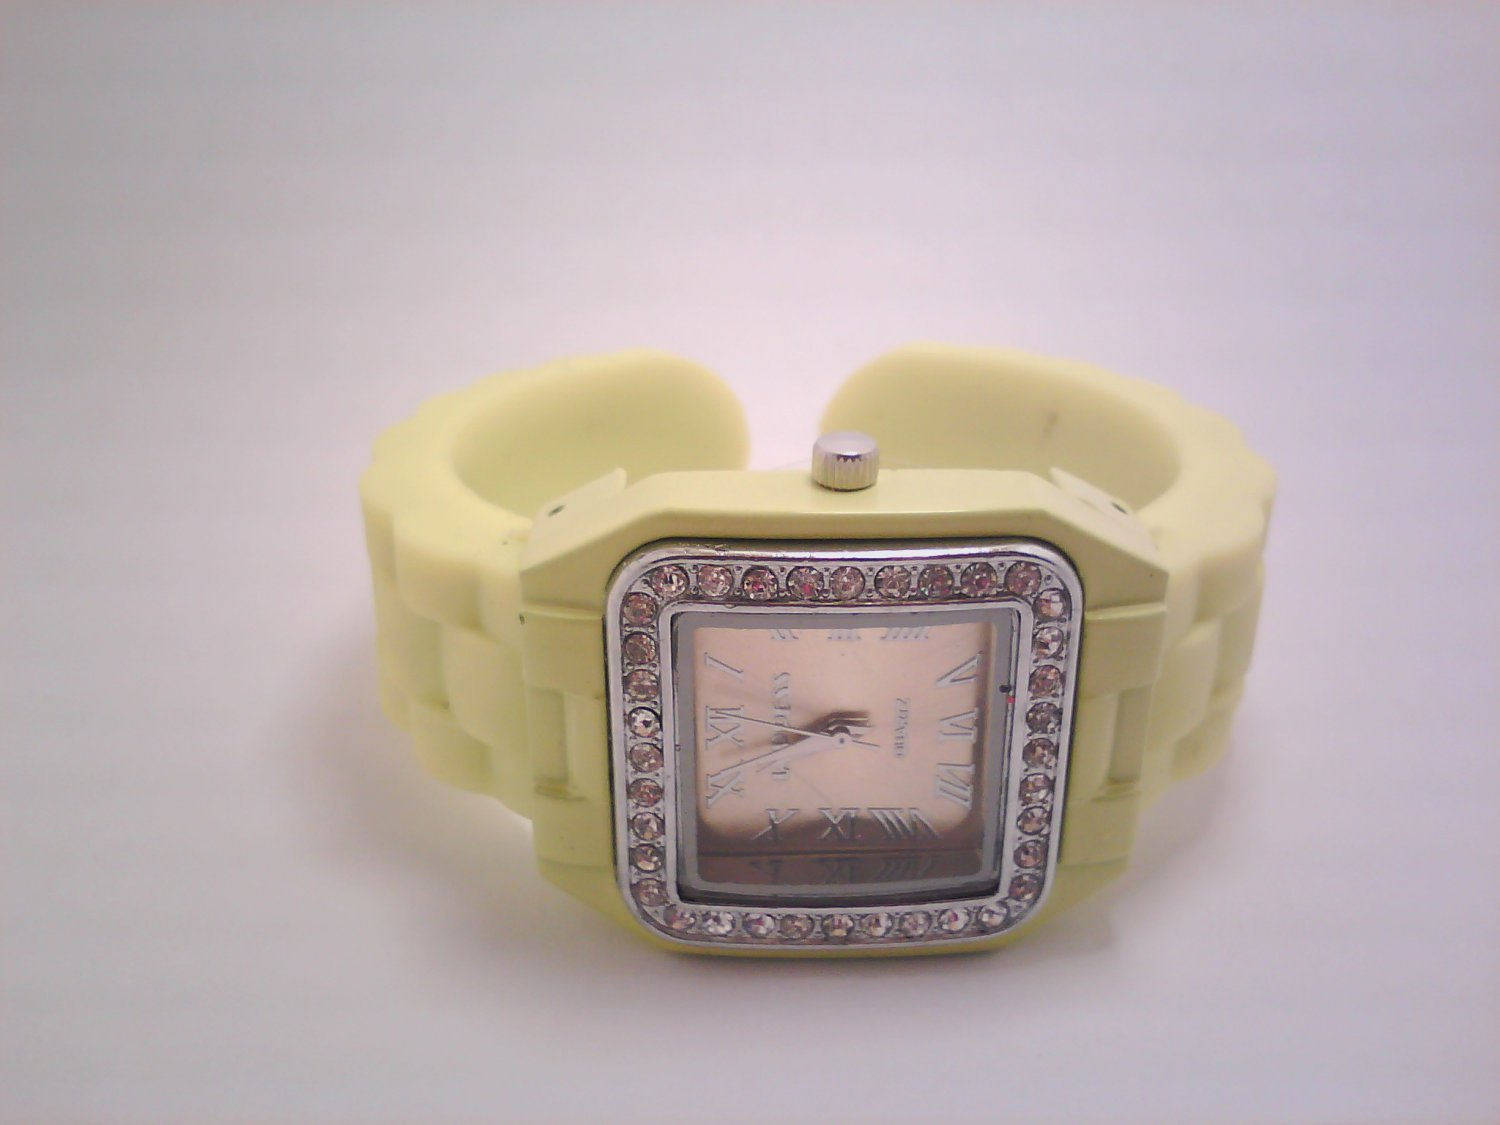 Yellow Lady's Fashion Analog Watch